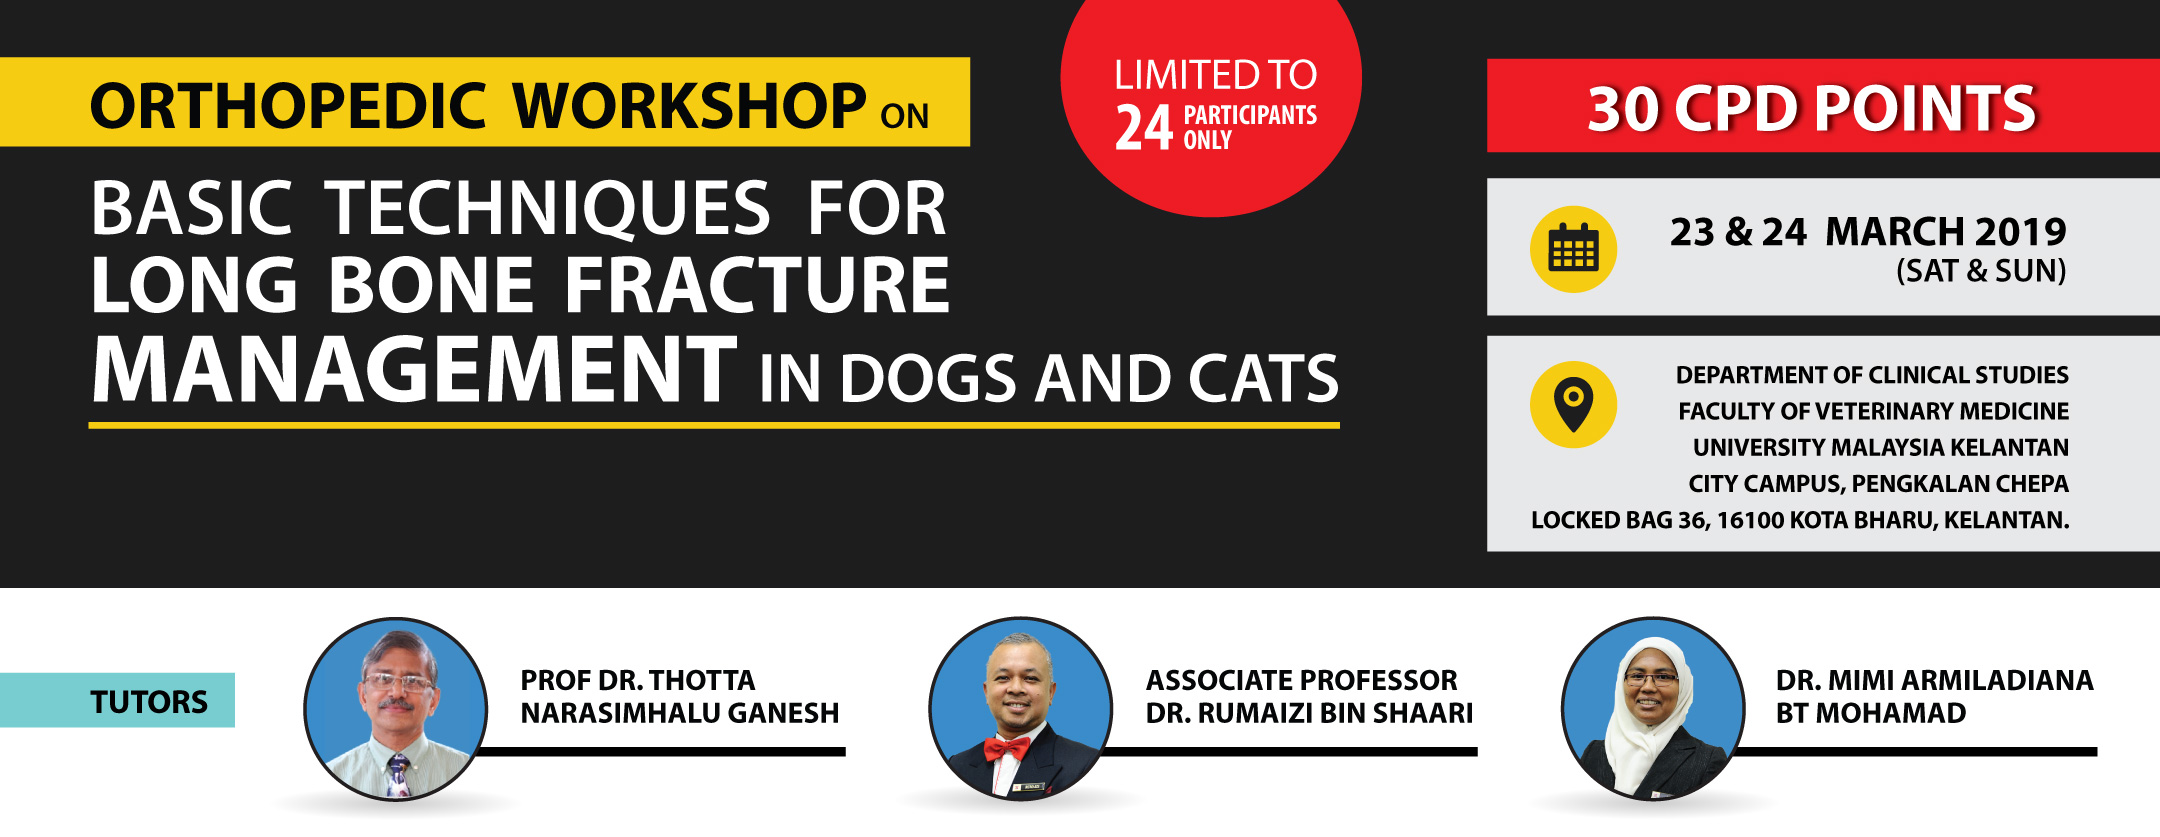 Orthopedic Workshop on Basic Techniques in Long Bone Fracture Management in Dogs & Cats